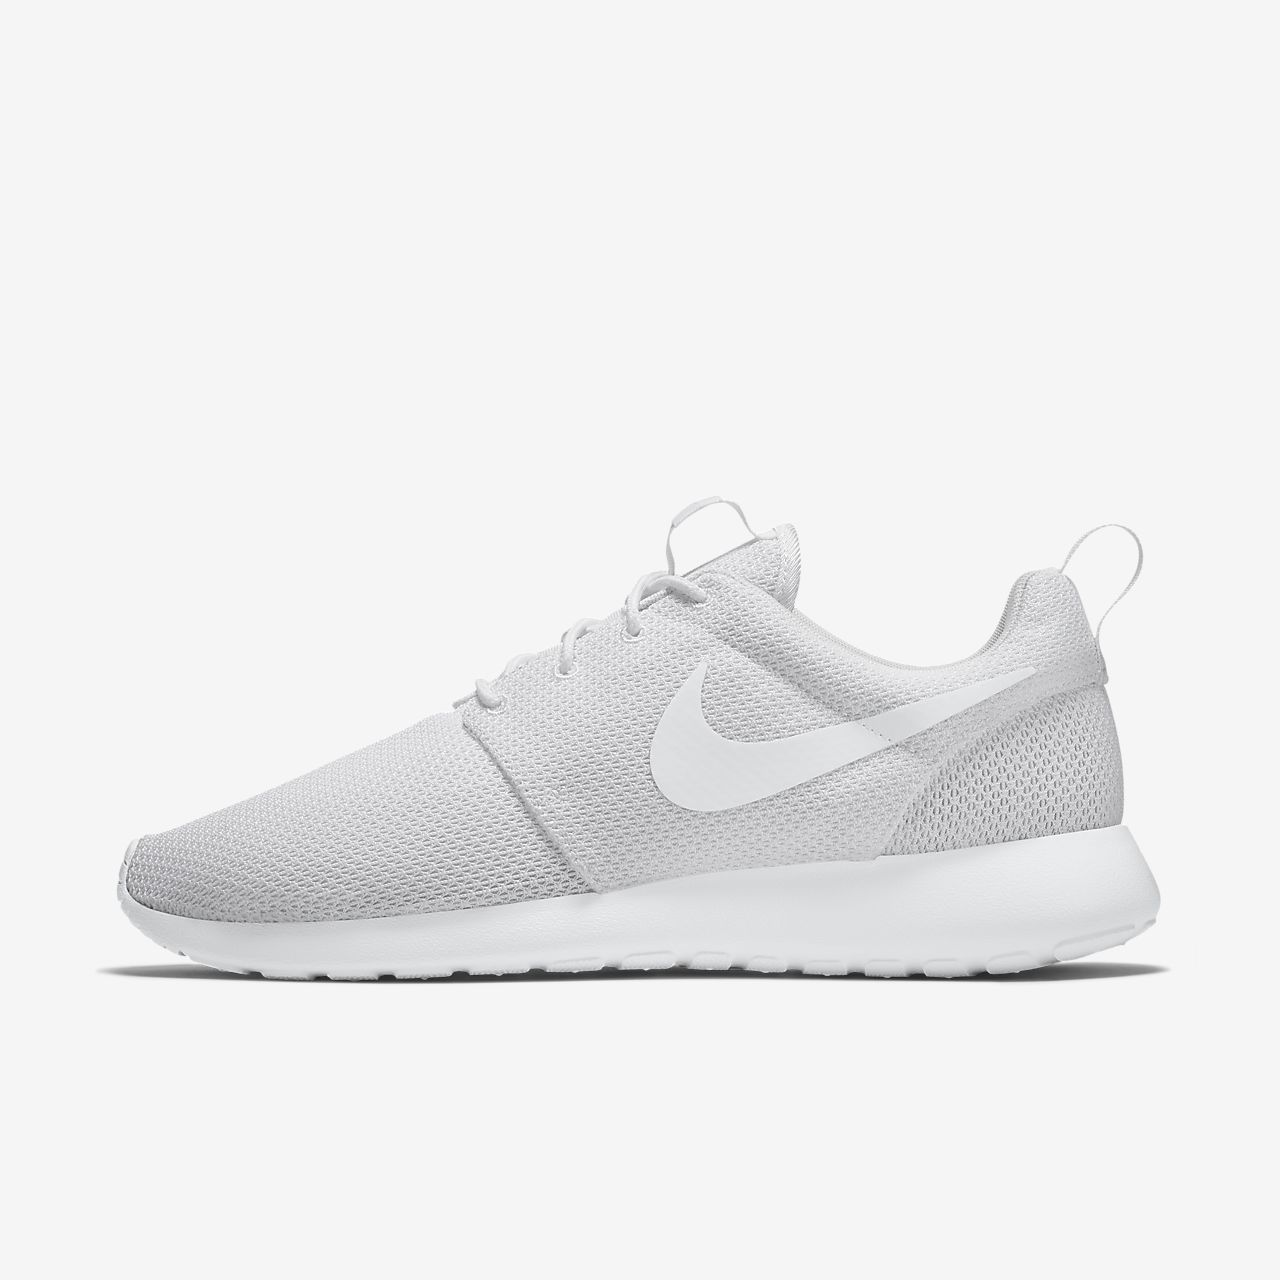 cb25bcc397d0 Nike Roshe One Men s Shoe. Nike.com